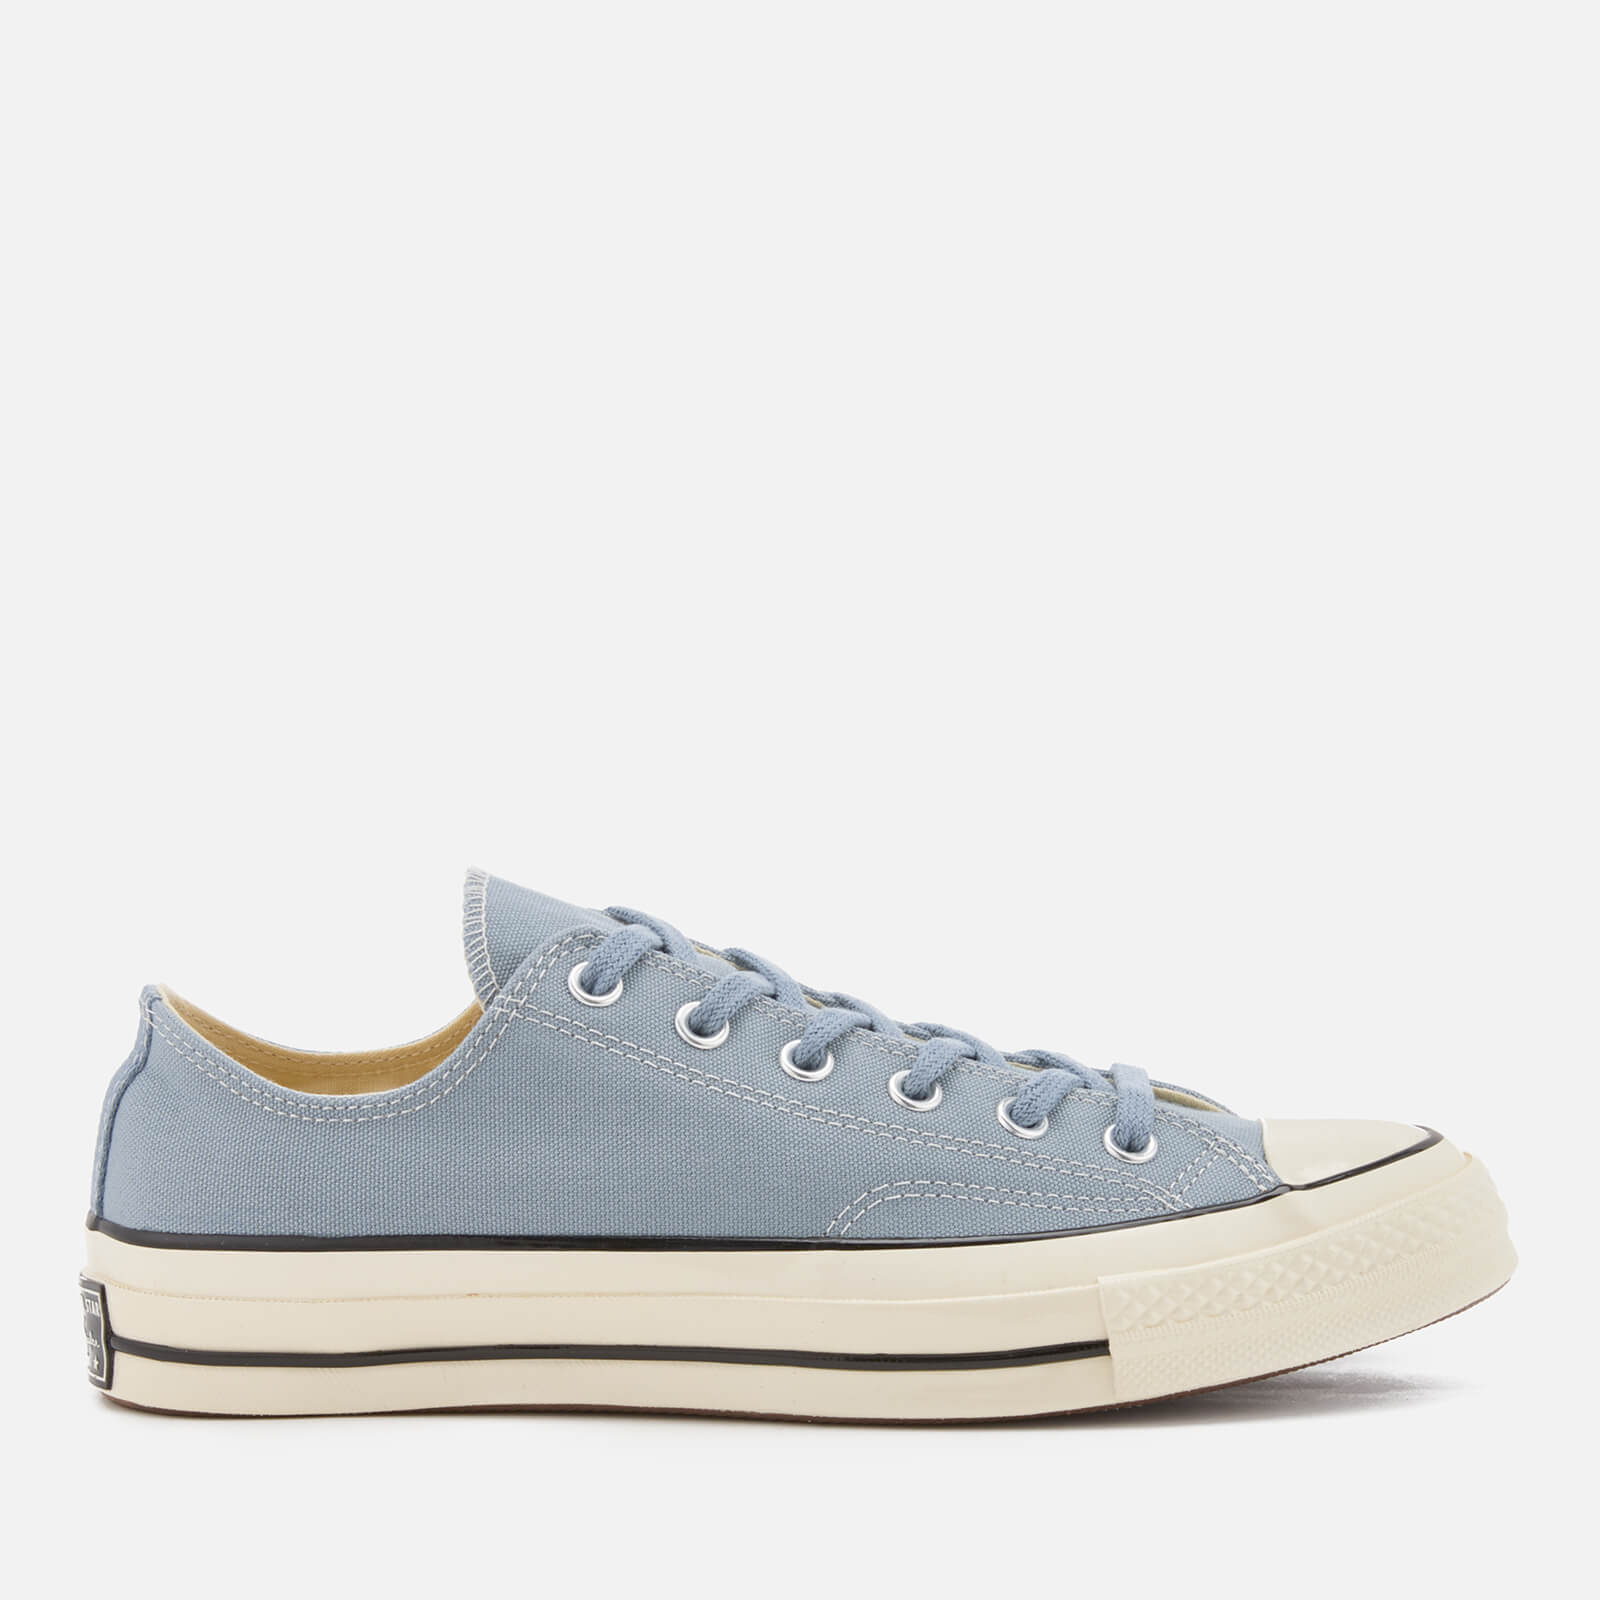 5ff87b4199f2 Converse Chuck Taylor All Star  70 Ox Trainers - Blue Slate Blue Slate Egret  - Free UK Delivery over £50